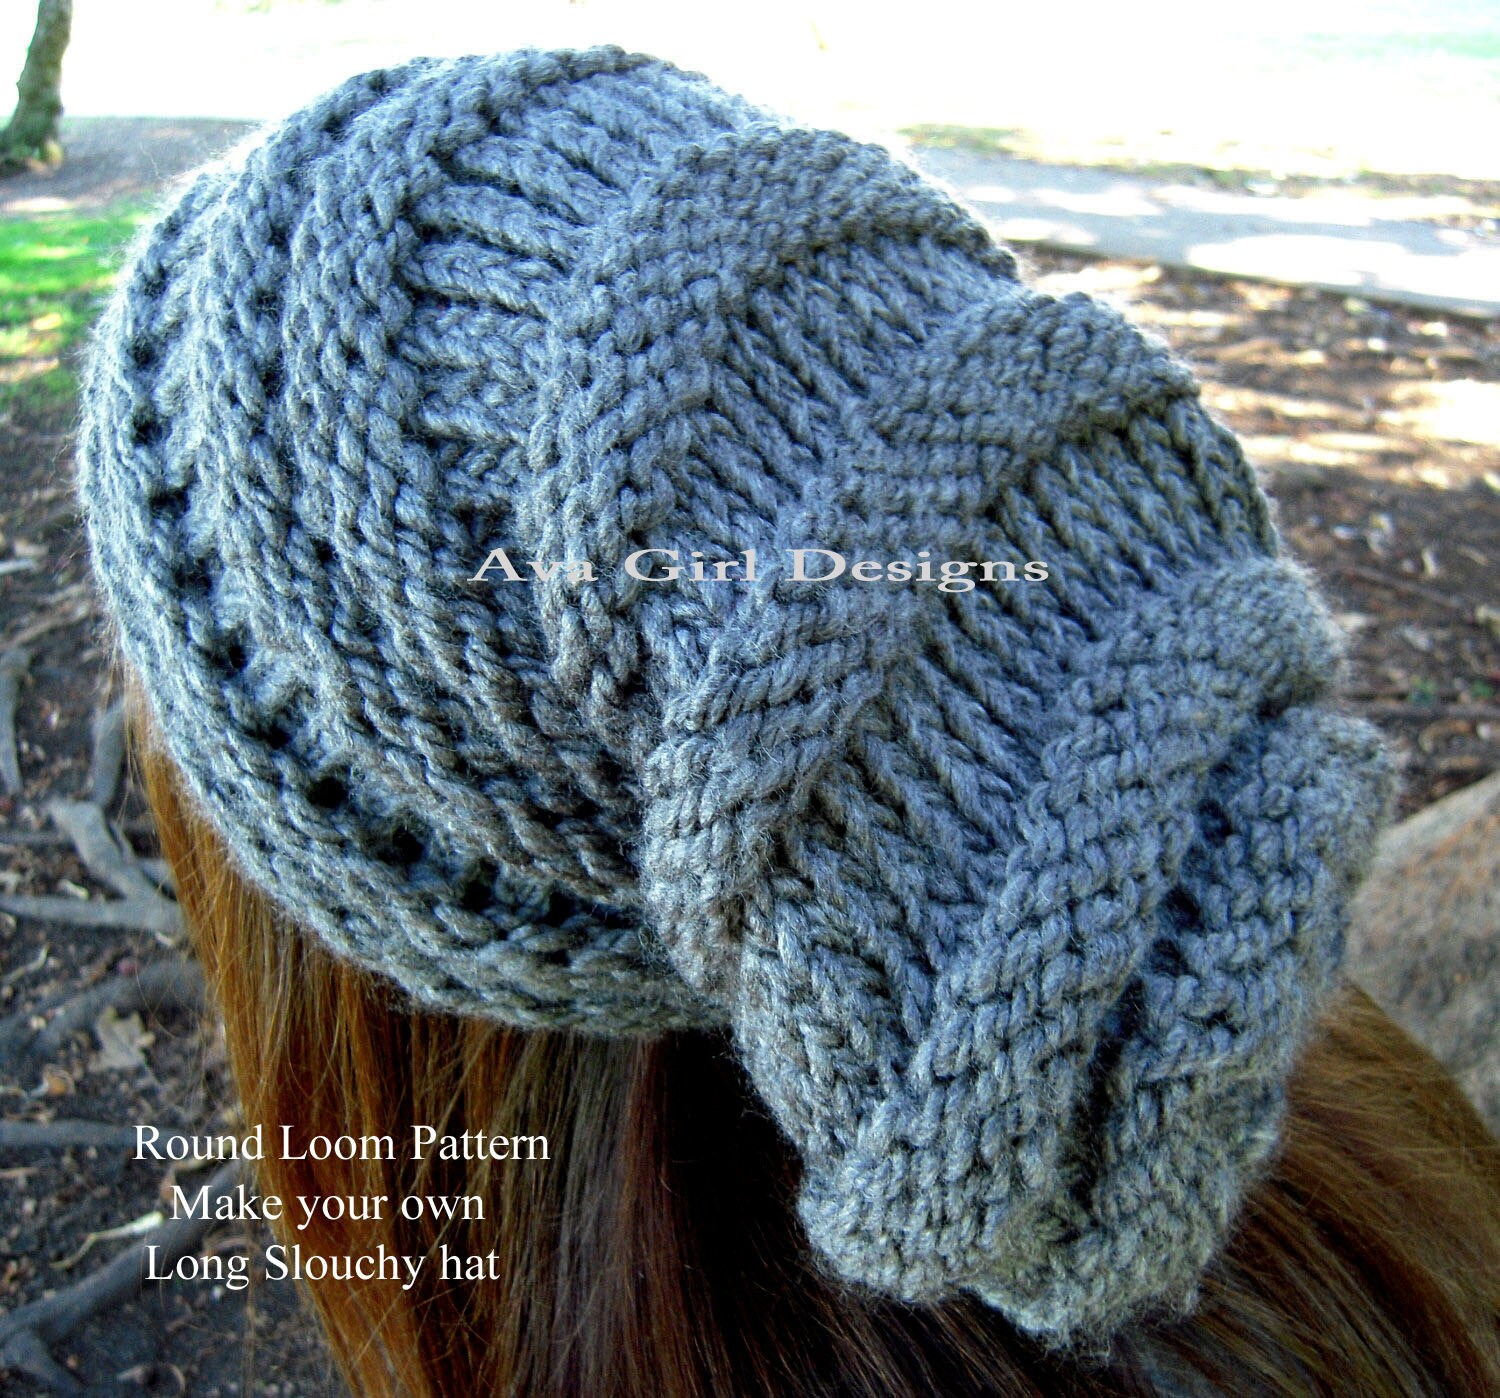 Knitting Loom Pattern : Knitting loom pattern slouchy hat